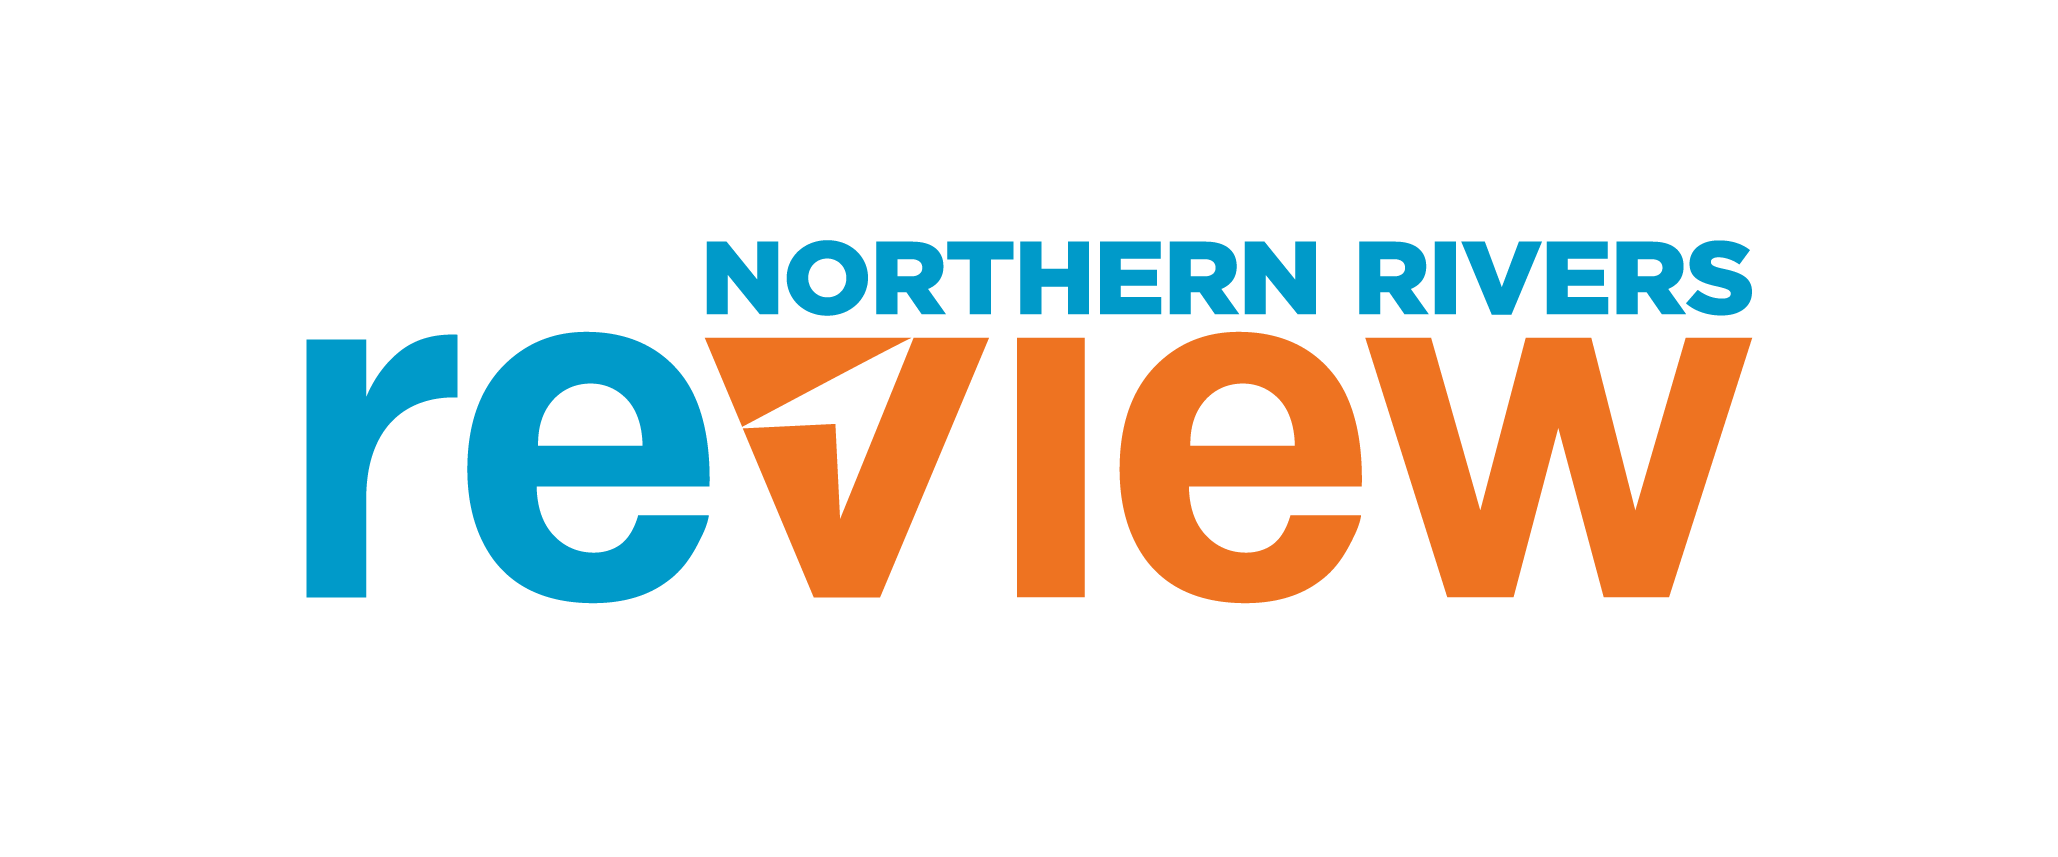 https://byronwritersfestival.com/wp-content/uploads/2021/06/Northern-Rivers-Review.png